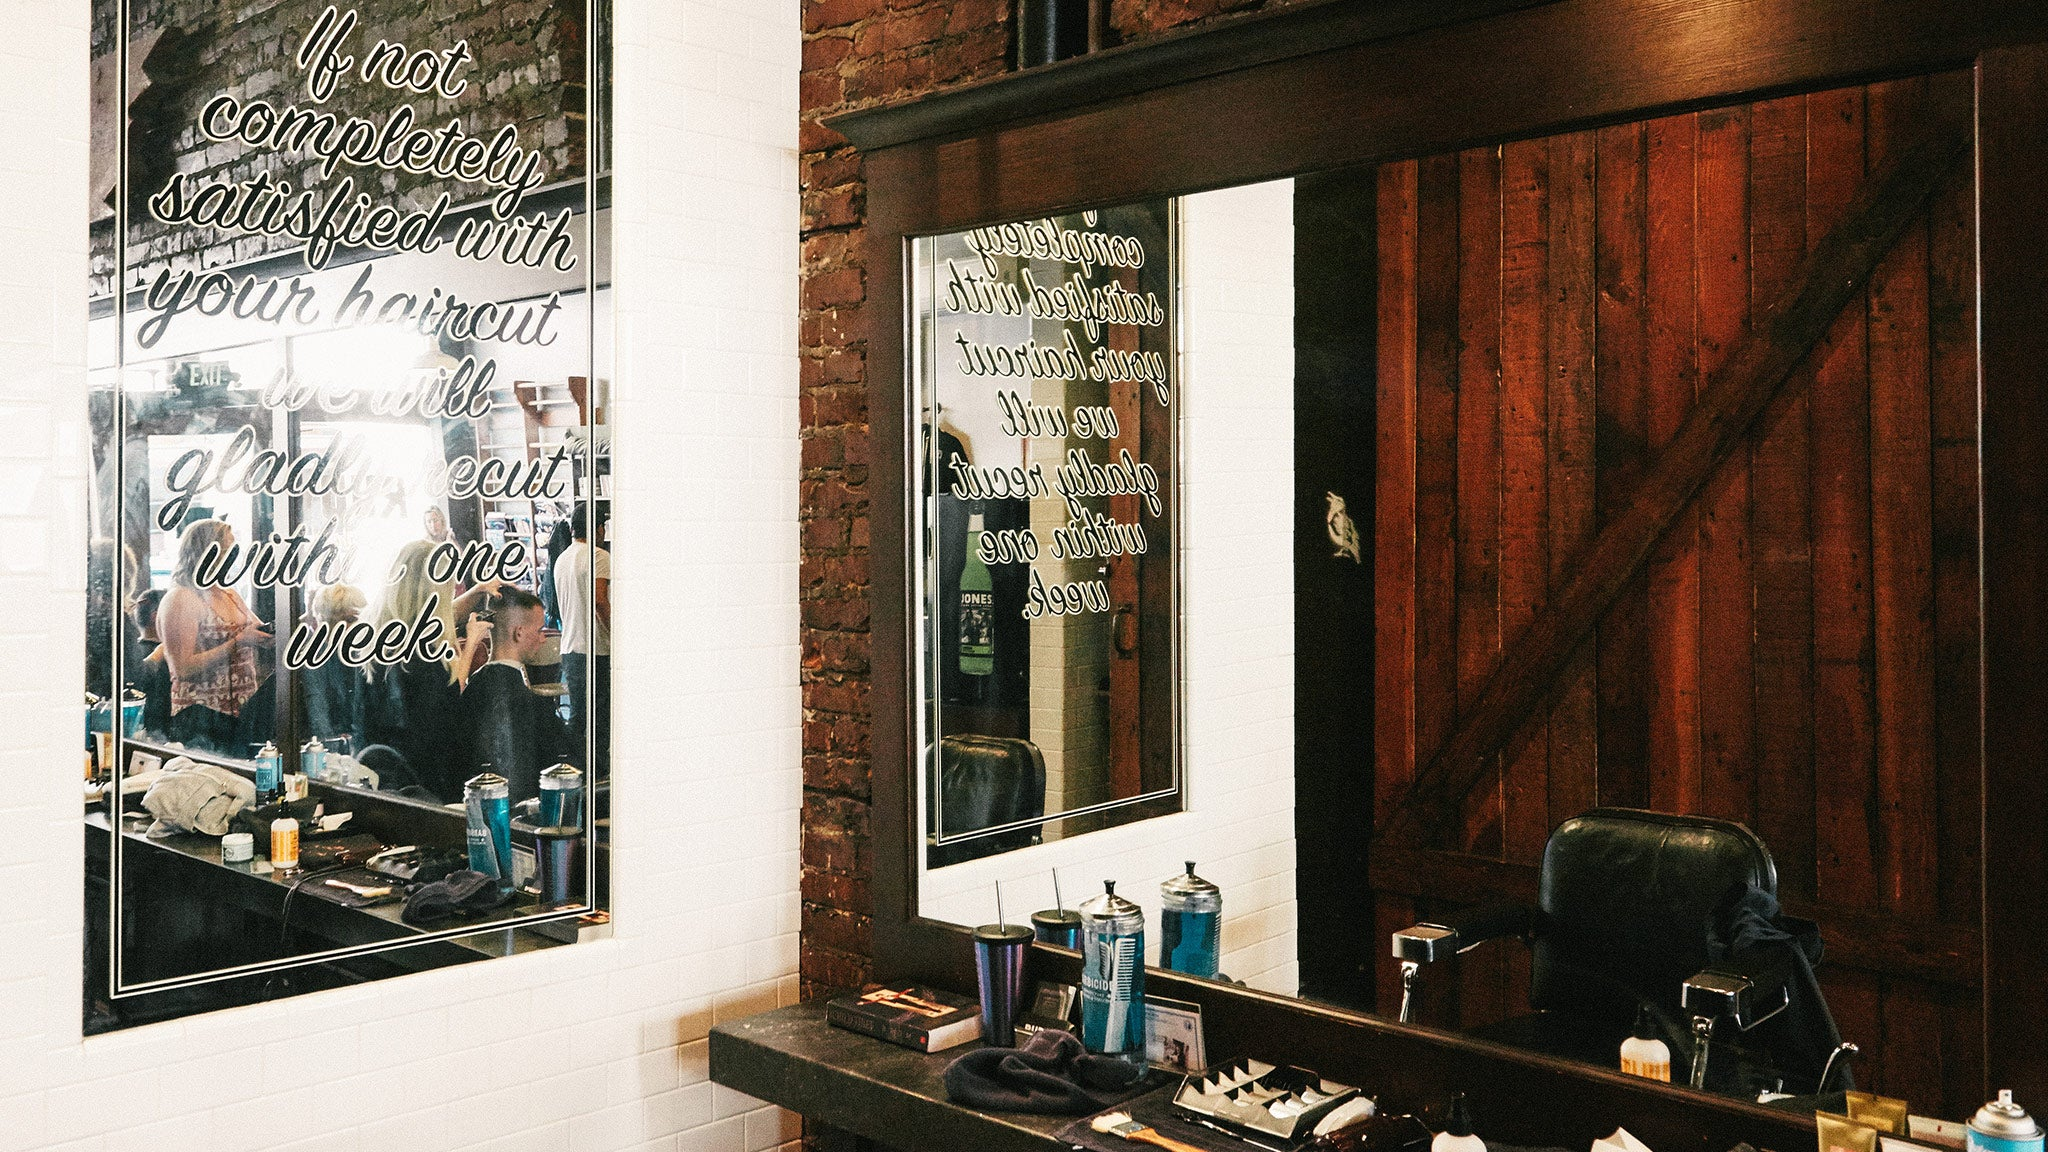 ballard barbershop | seattle barbers & stylists | rudy's barbershop